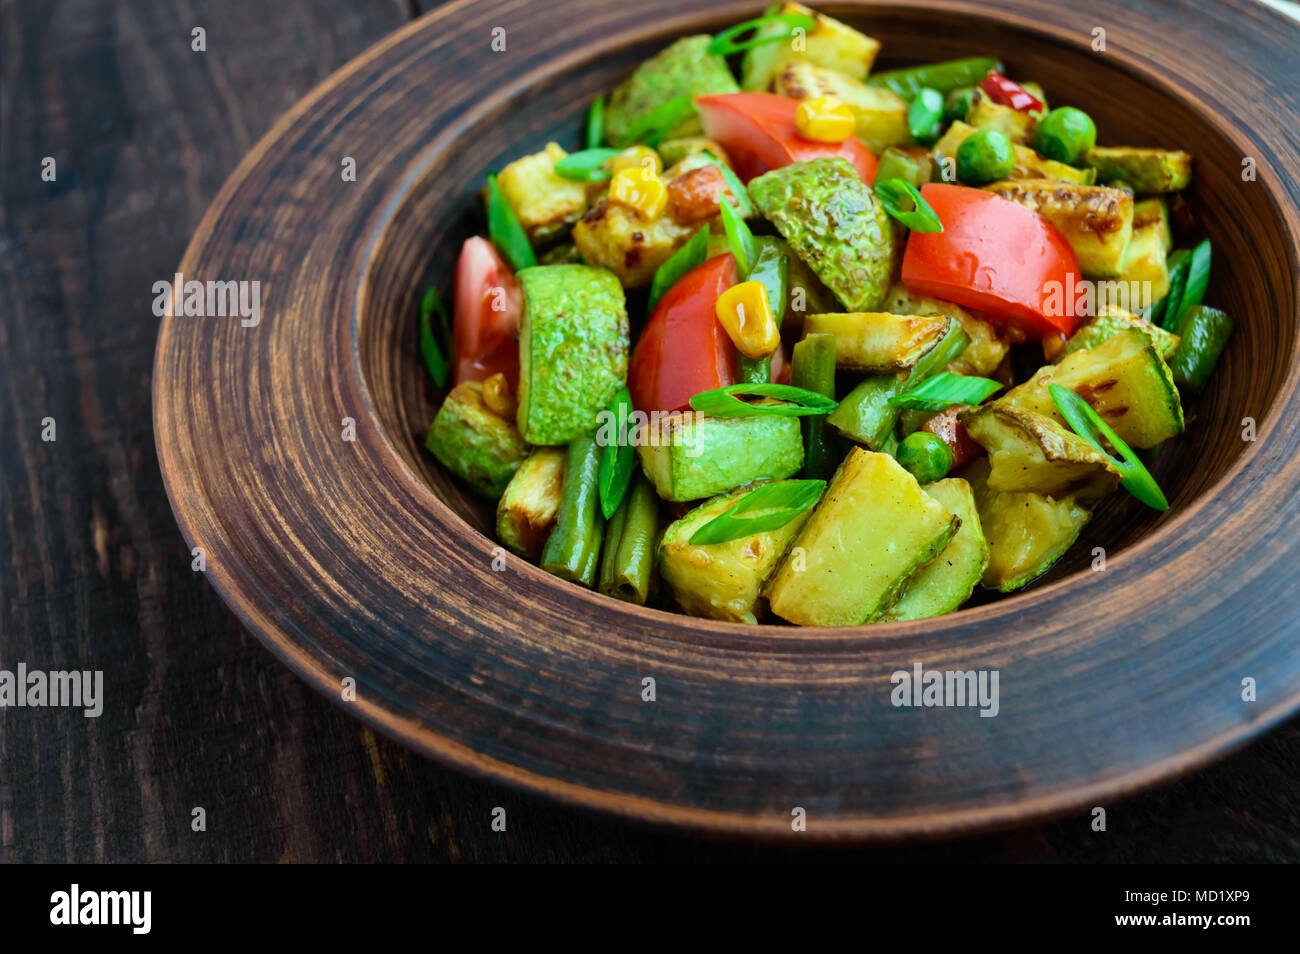 Dietary vegetarian salad with grilled zucchini, fresh tomatoes, sweet corn and herbs in a clay bowl on dark wooden background. - Stock Image